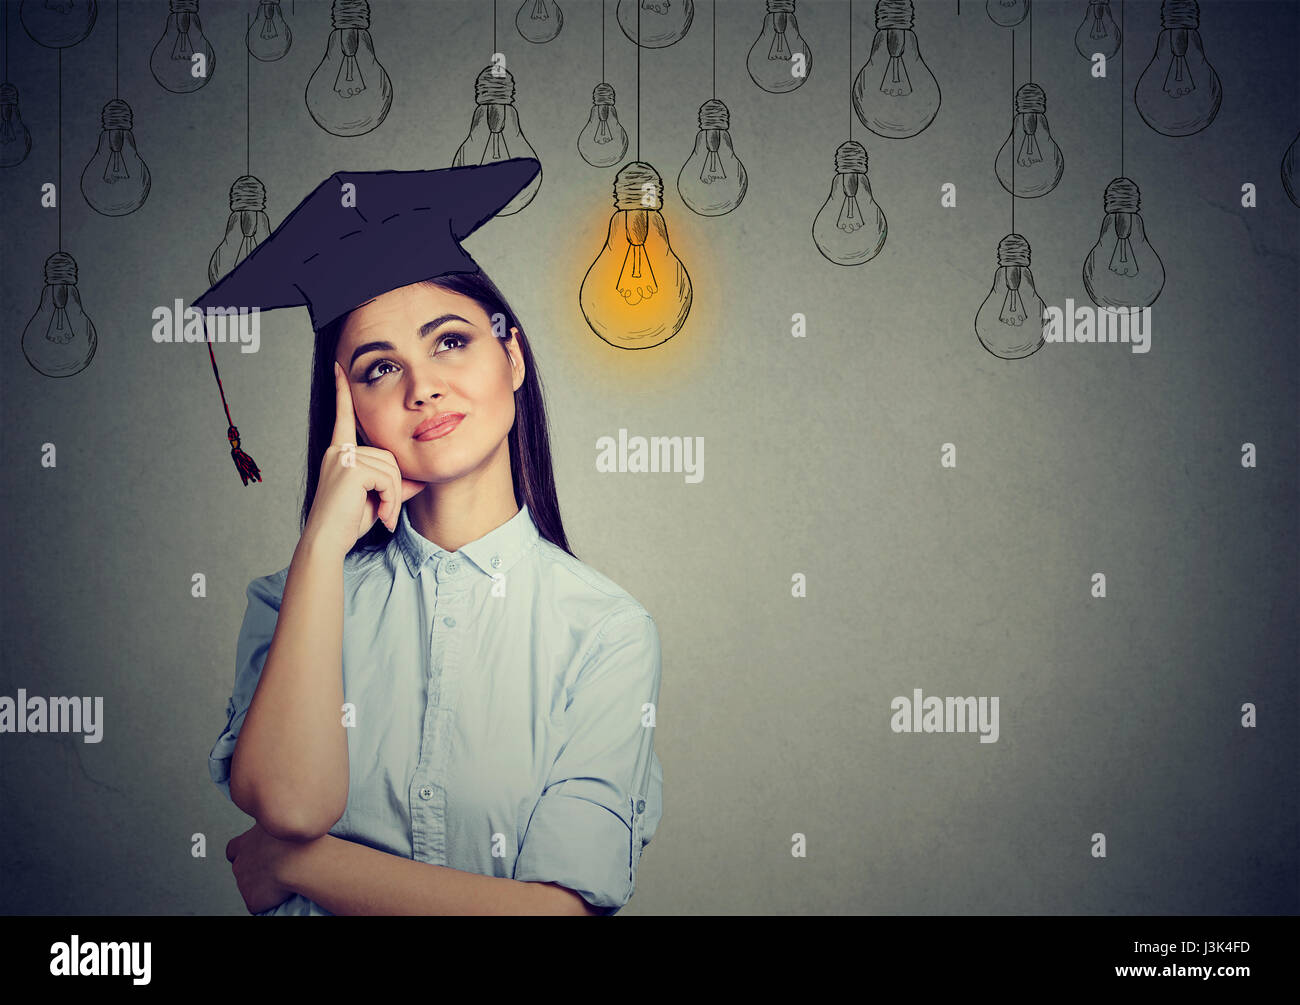 Graduate student young woman in cap gown looking up at bright light bulb thinking isolated gray wall background. Stock Photo